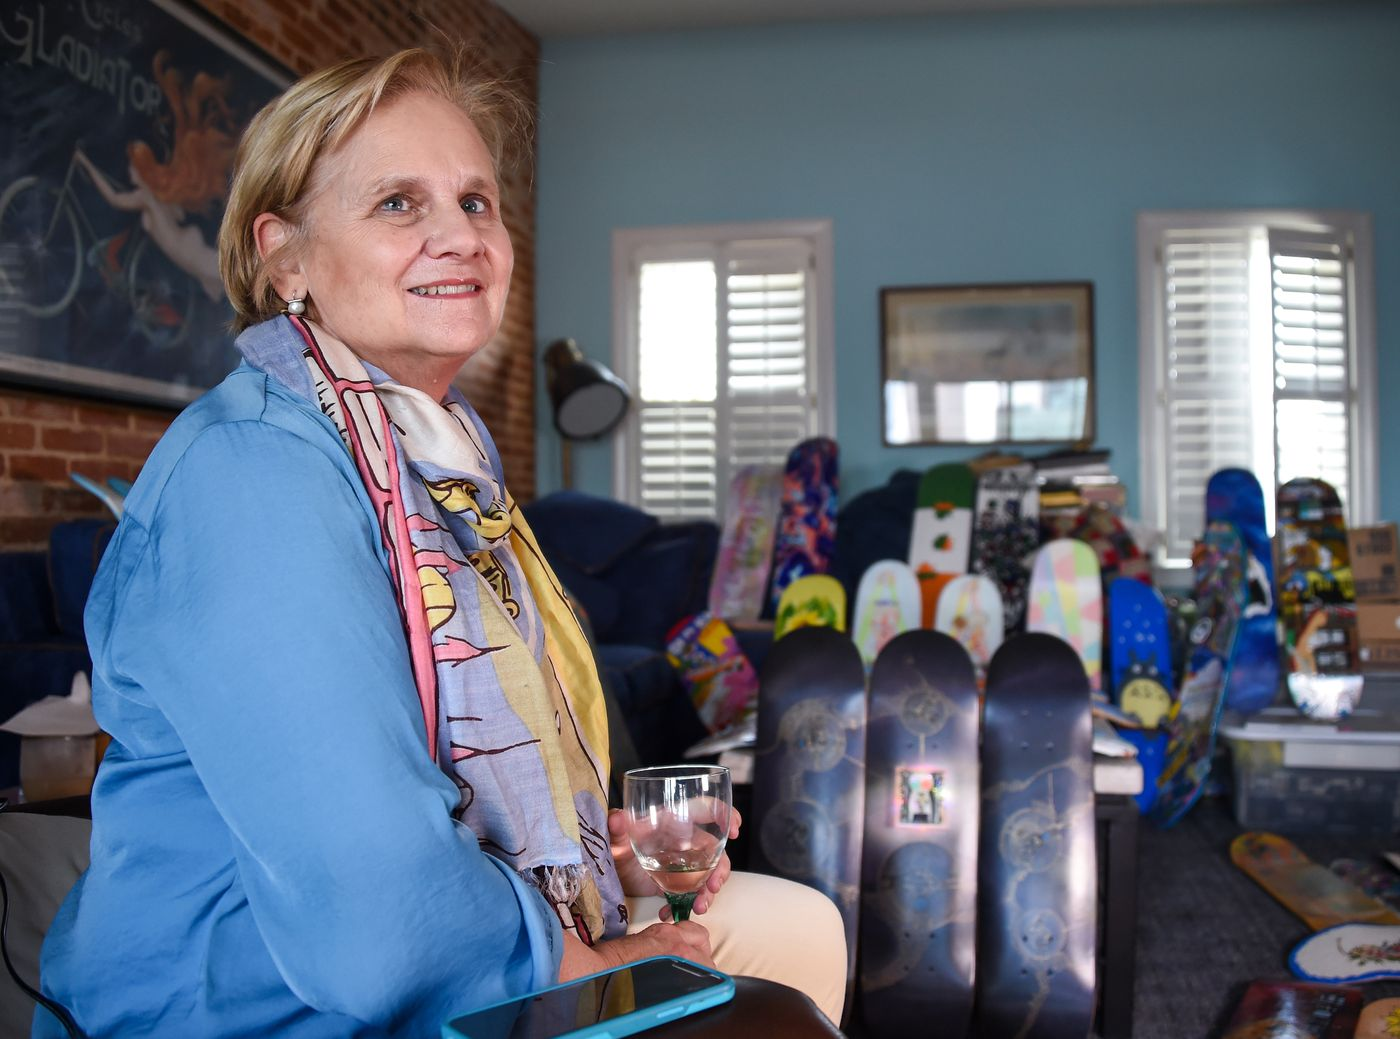 Cindy Conklin sits in her living room with painted skateboard decks on Wednesday, April 7, 2021; they'll be auctioned off to help fund the completion of Jake's Skate Park at Rash Field.